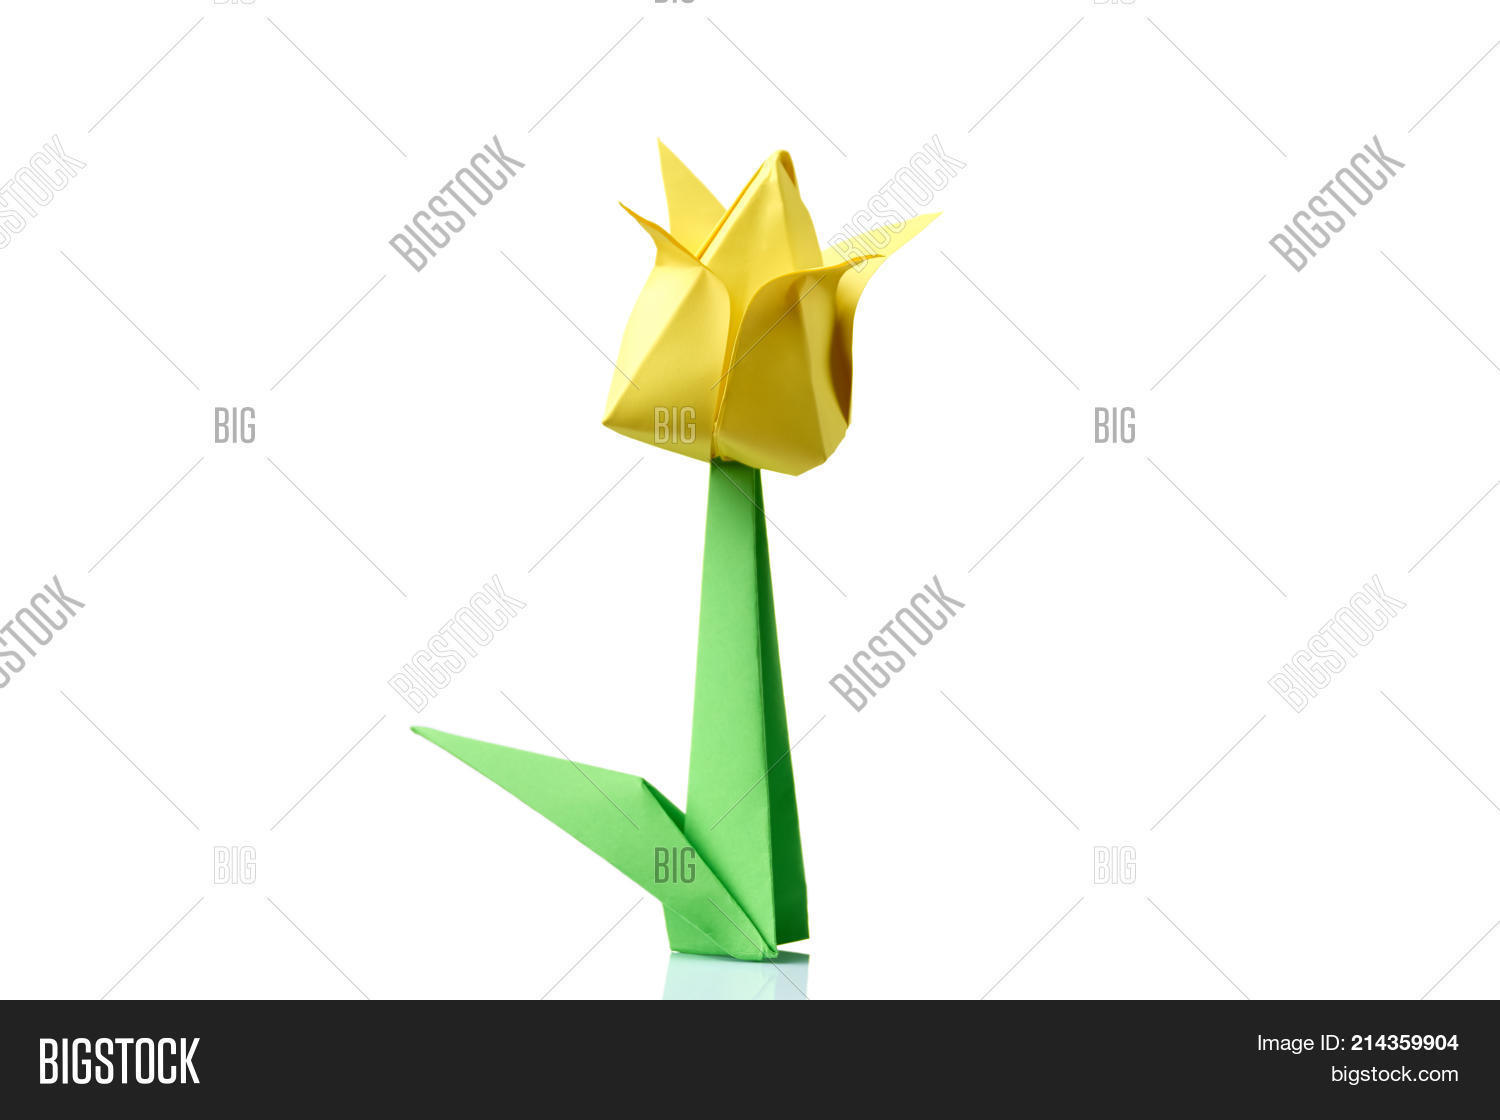 Yellow tulip origami flower image photo bigstock yellow tulip origami flower traditional model of bulb and leaf simple origami crafting for mightylinksfo